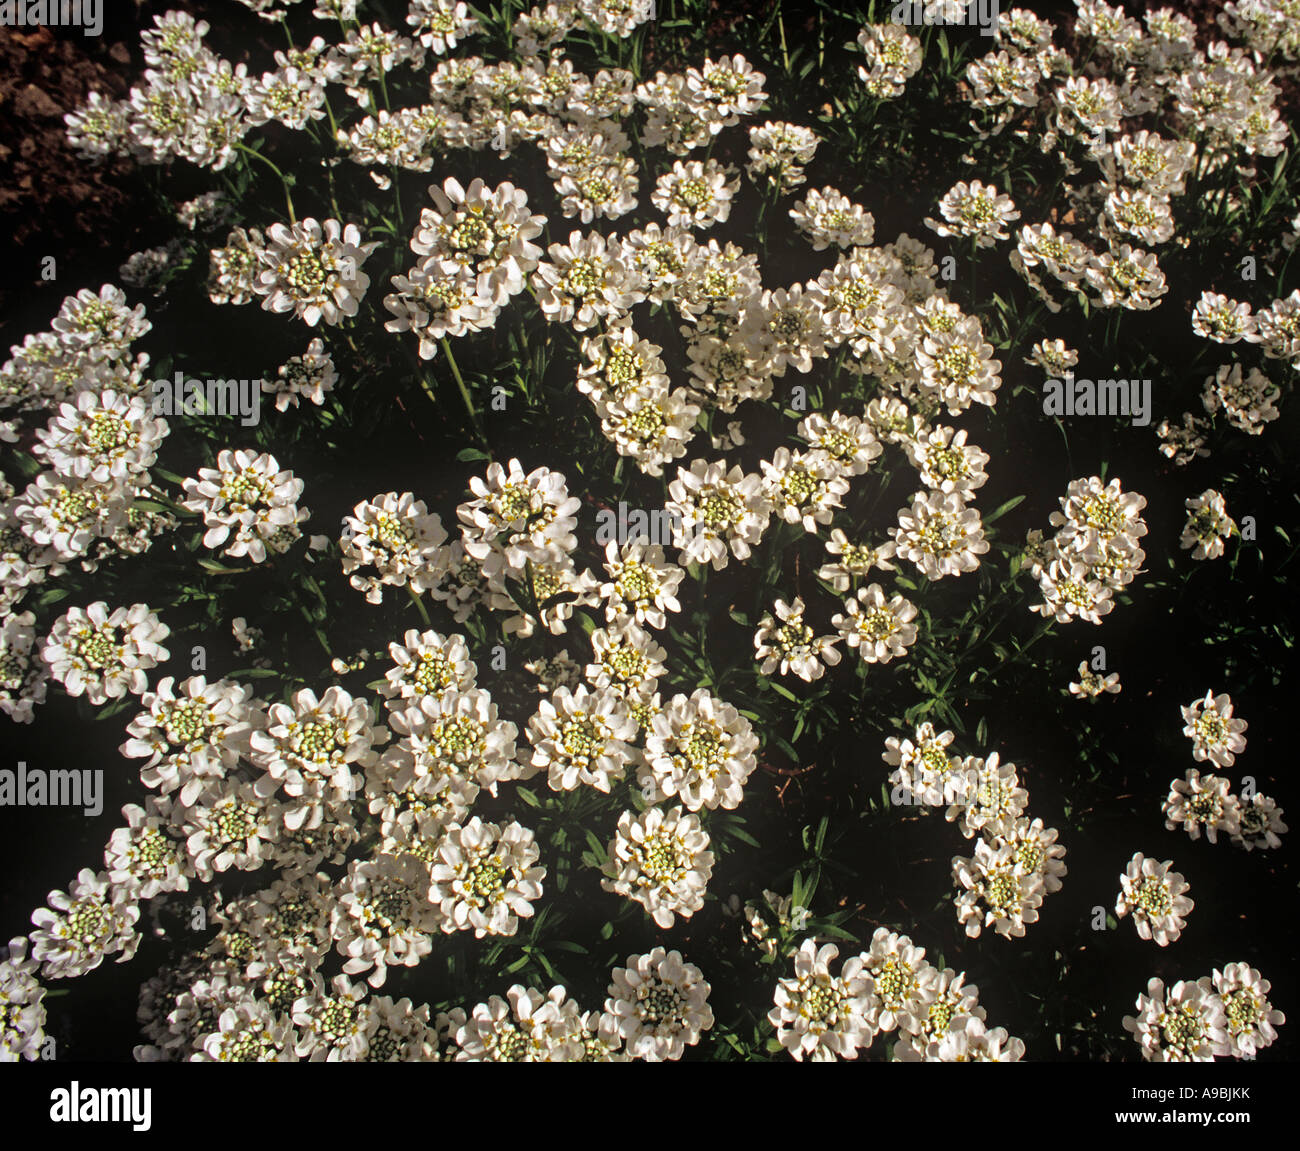 Clusters of small white flowers stock photos clusters of small iberis amara common candytuft fragrant small white flowers in dense clusters bushy annual stock image mightylinksfo